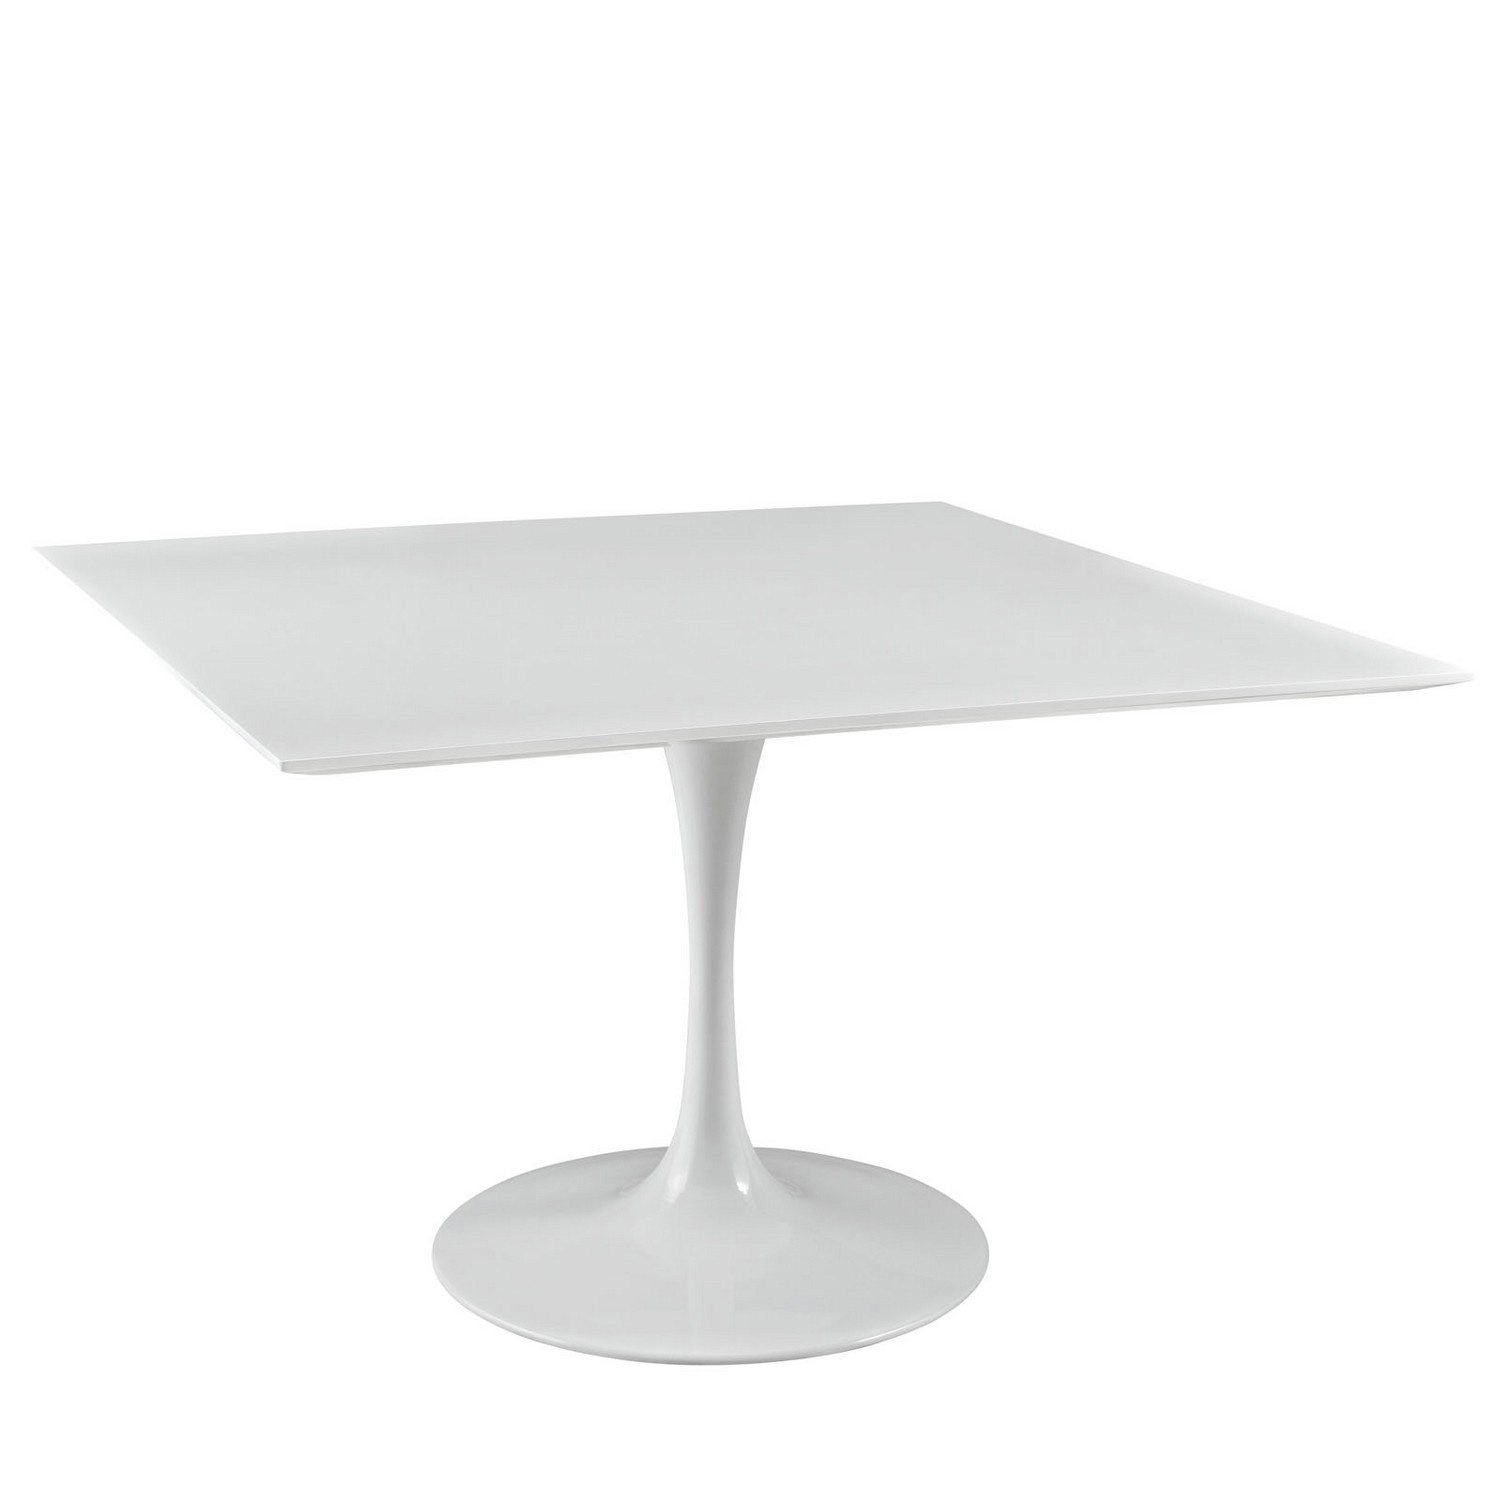 Modway Lippa 47 Square Wood Top Dining Table - White